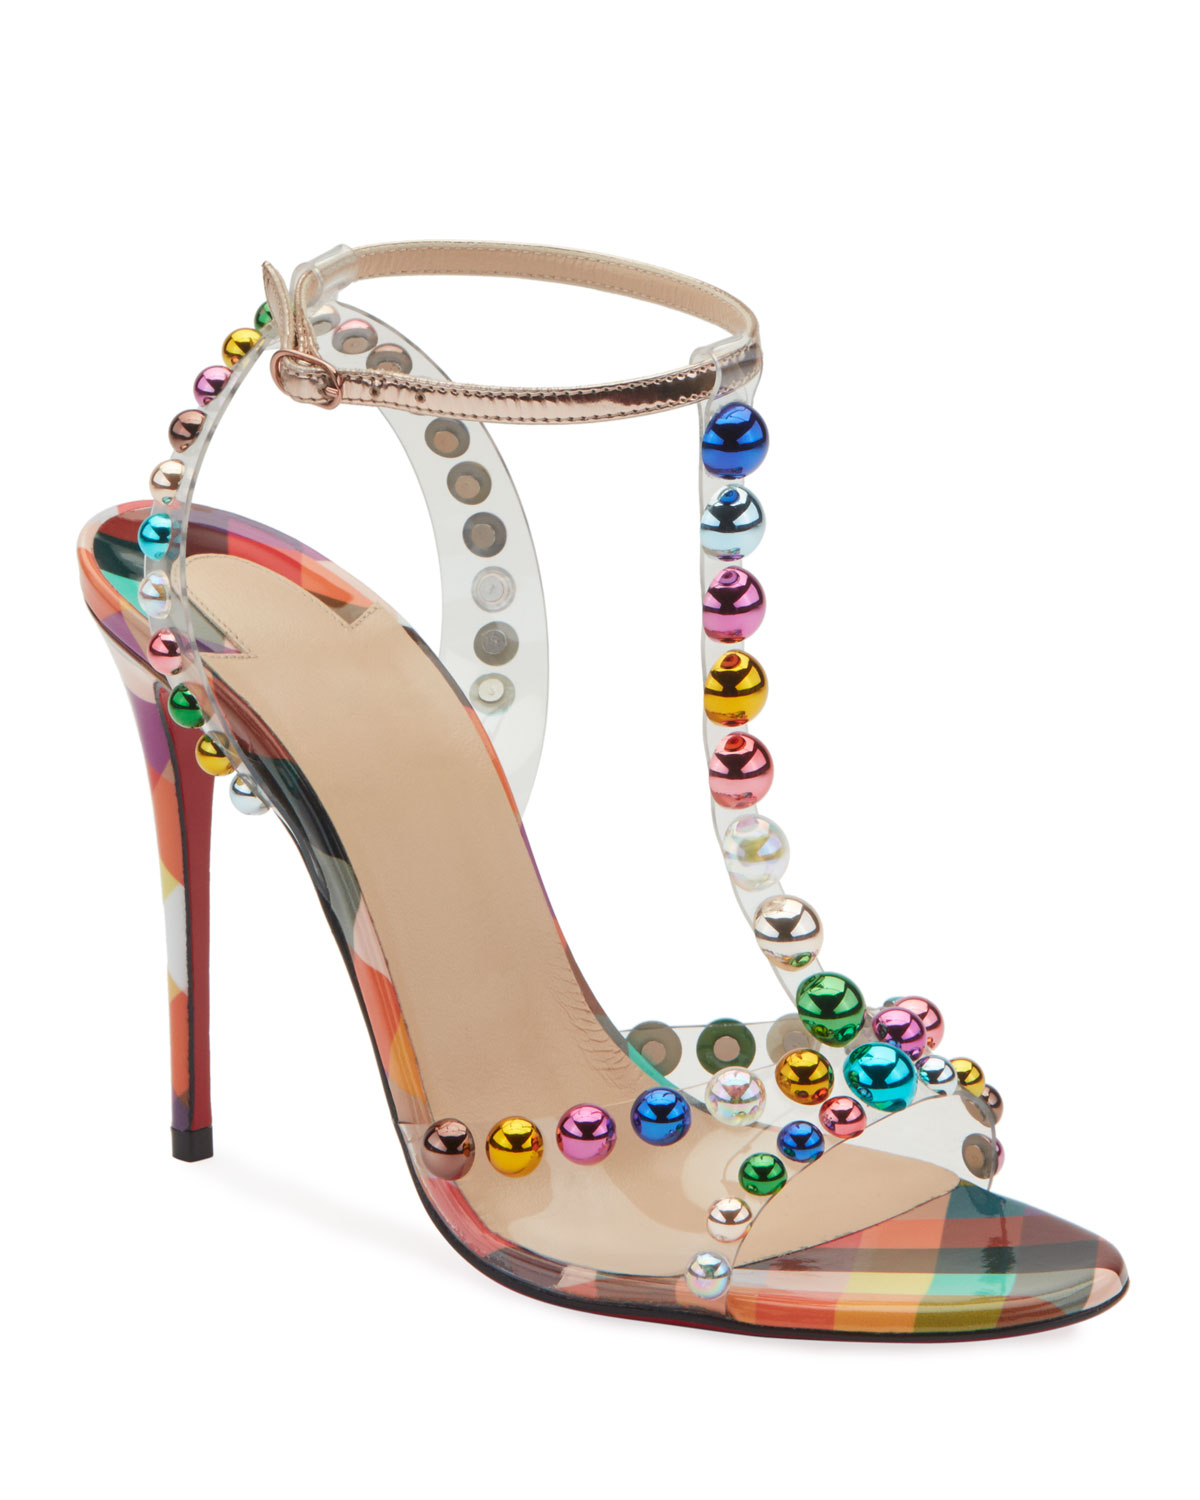 331223c6a0bd Christian Louboutin Faridavavie See-Through Vinyl Patent Red Sole T-Strap  Sandals In Red Multi